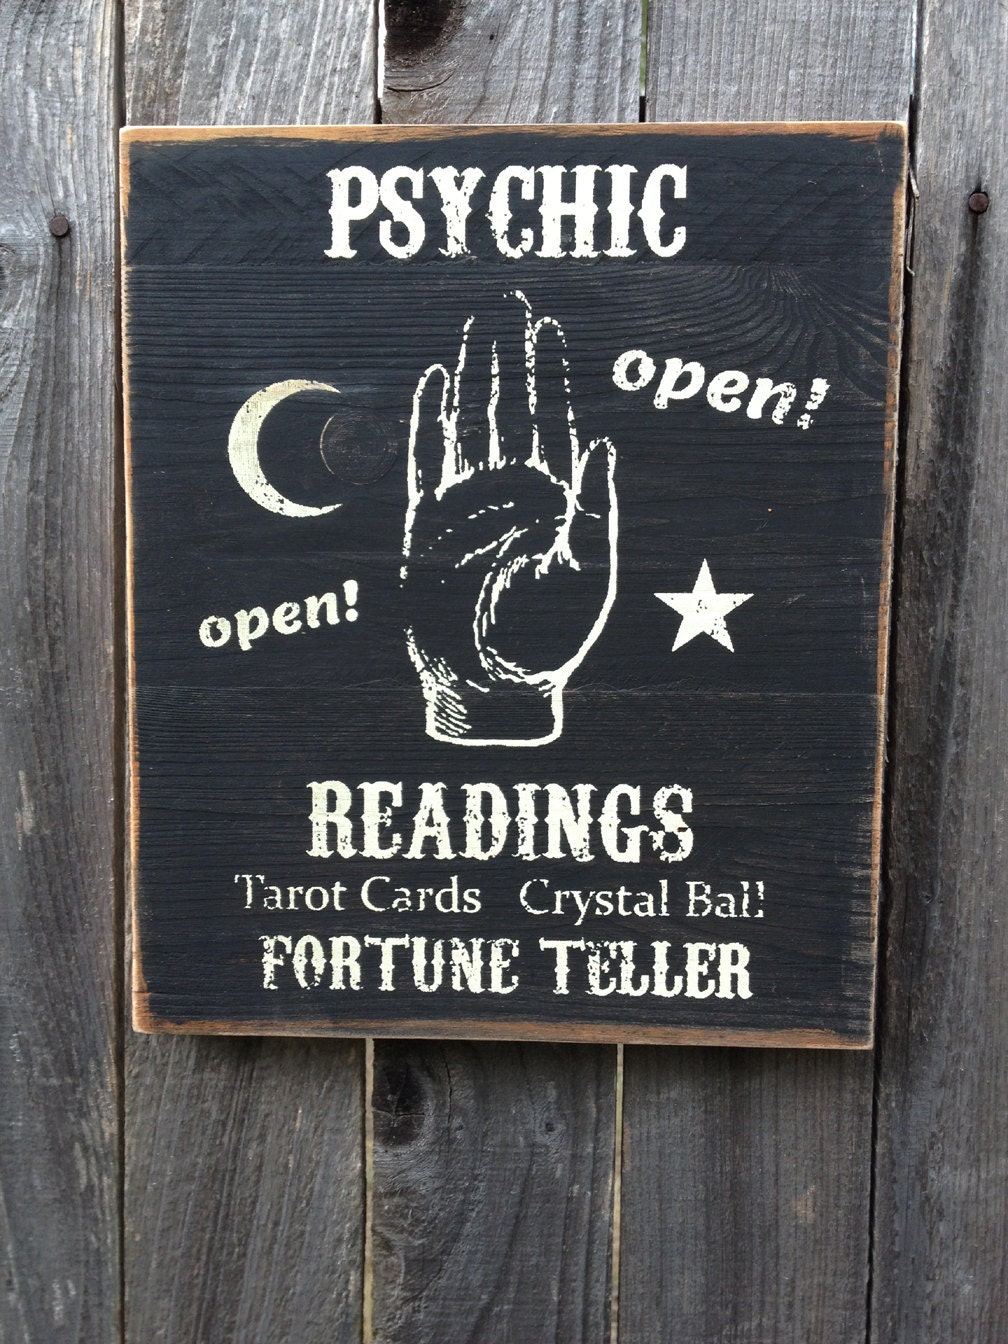 Psychic Readings Fortune Teller Wood Sign Primitive Rustic